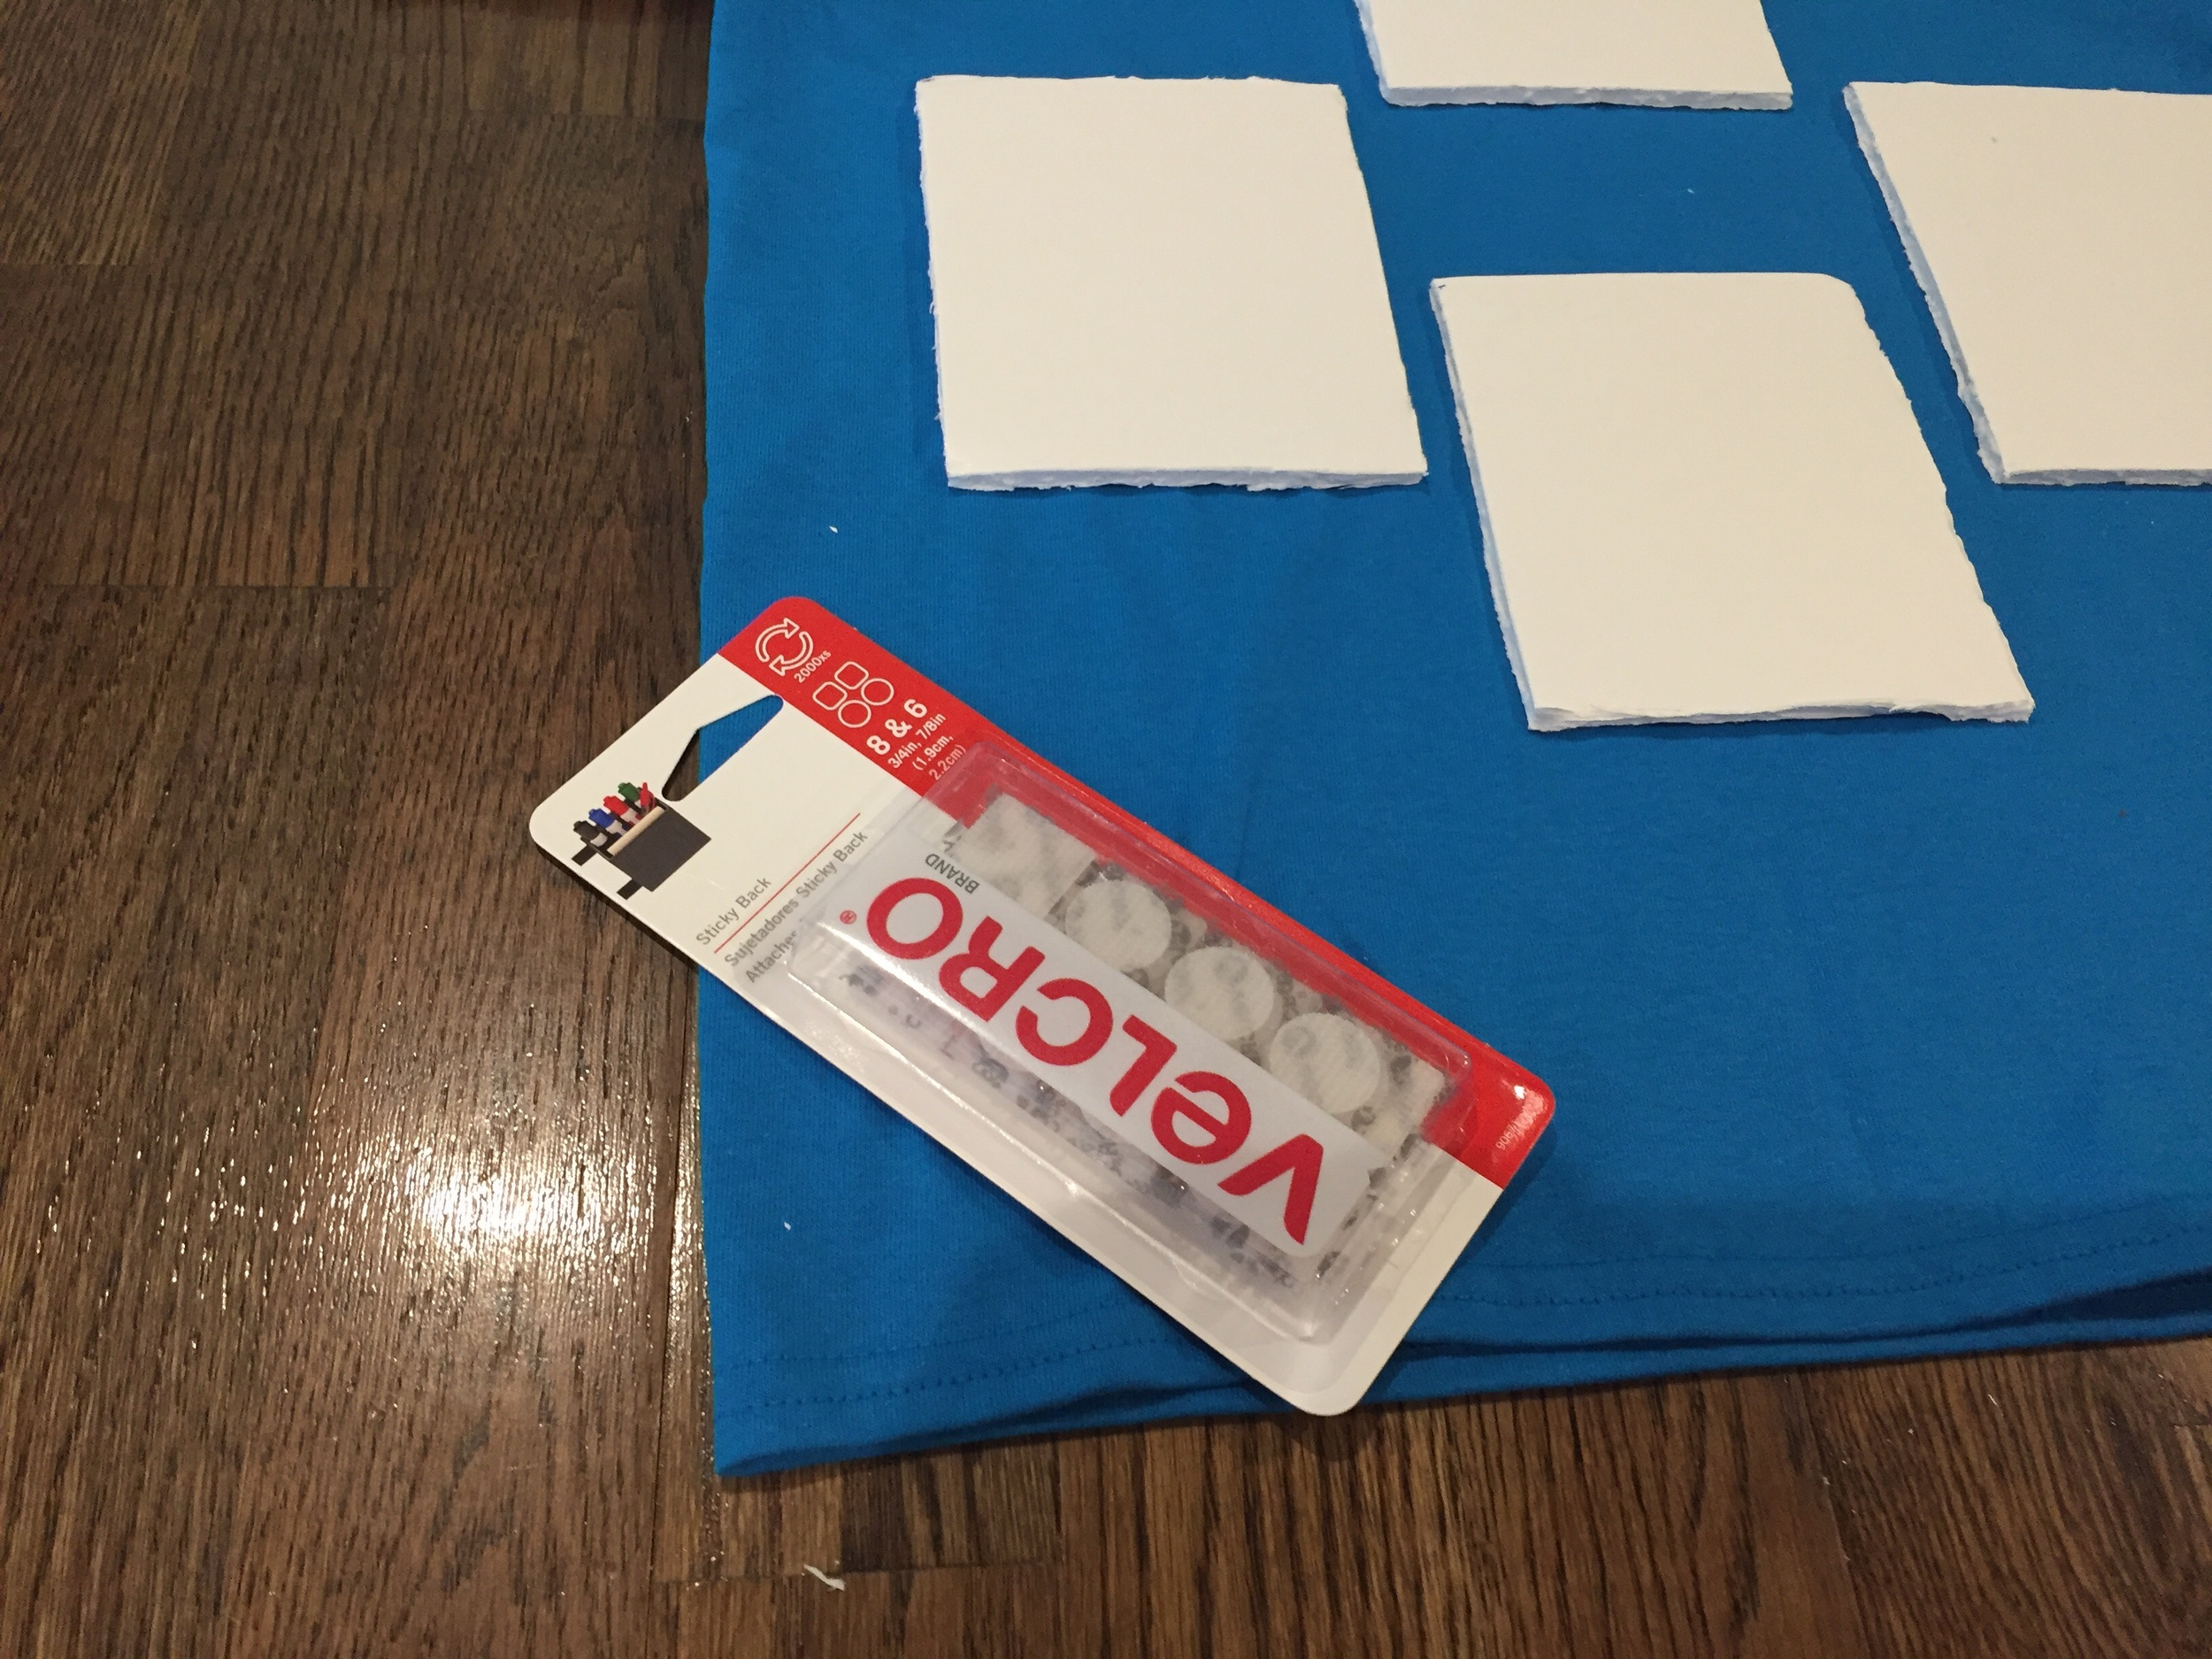 Using Velcro, attach the foam board squares to your tshirt.